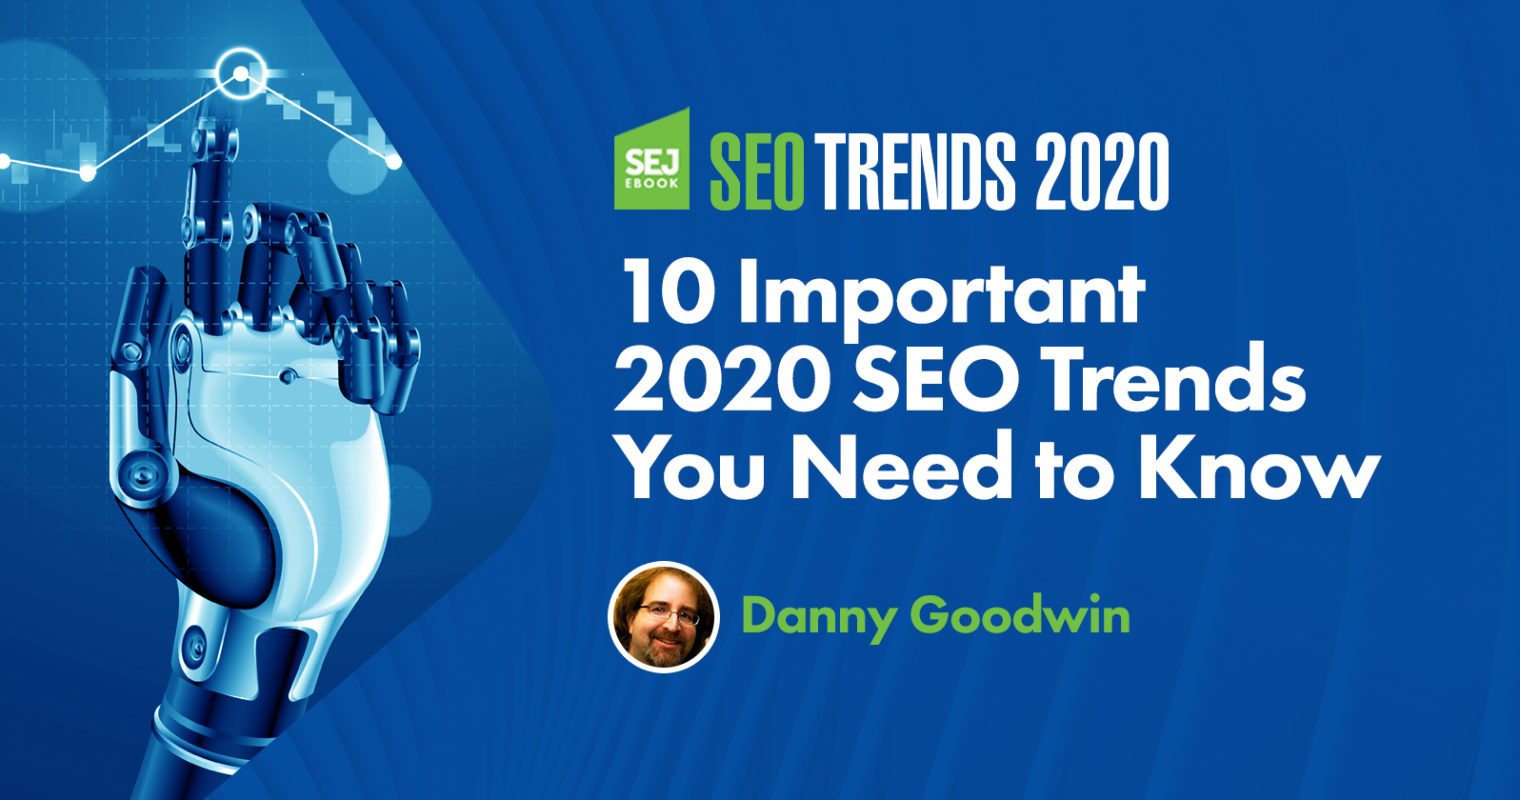 10 Important SEO Trends You Need to Know